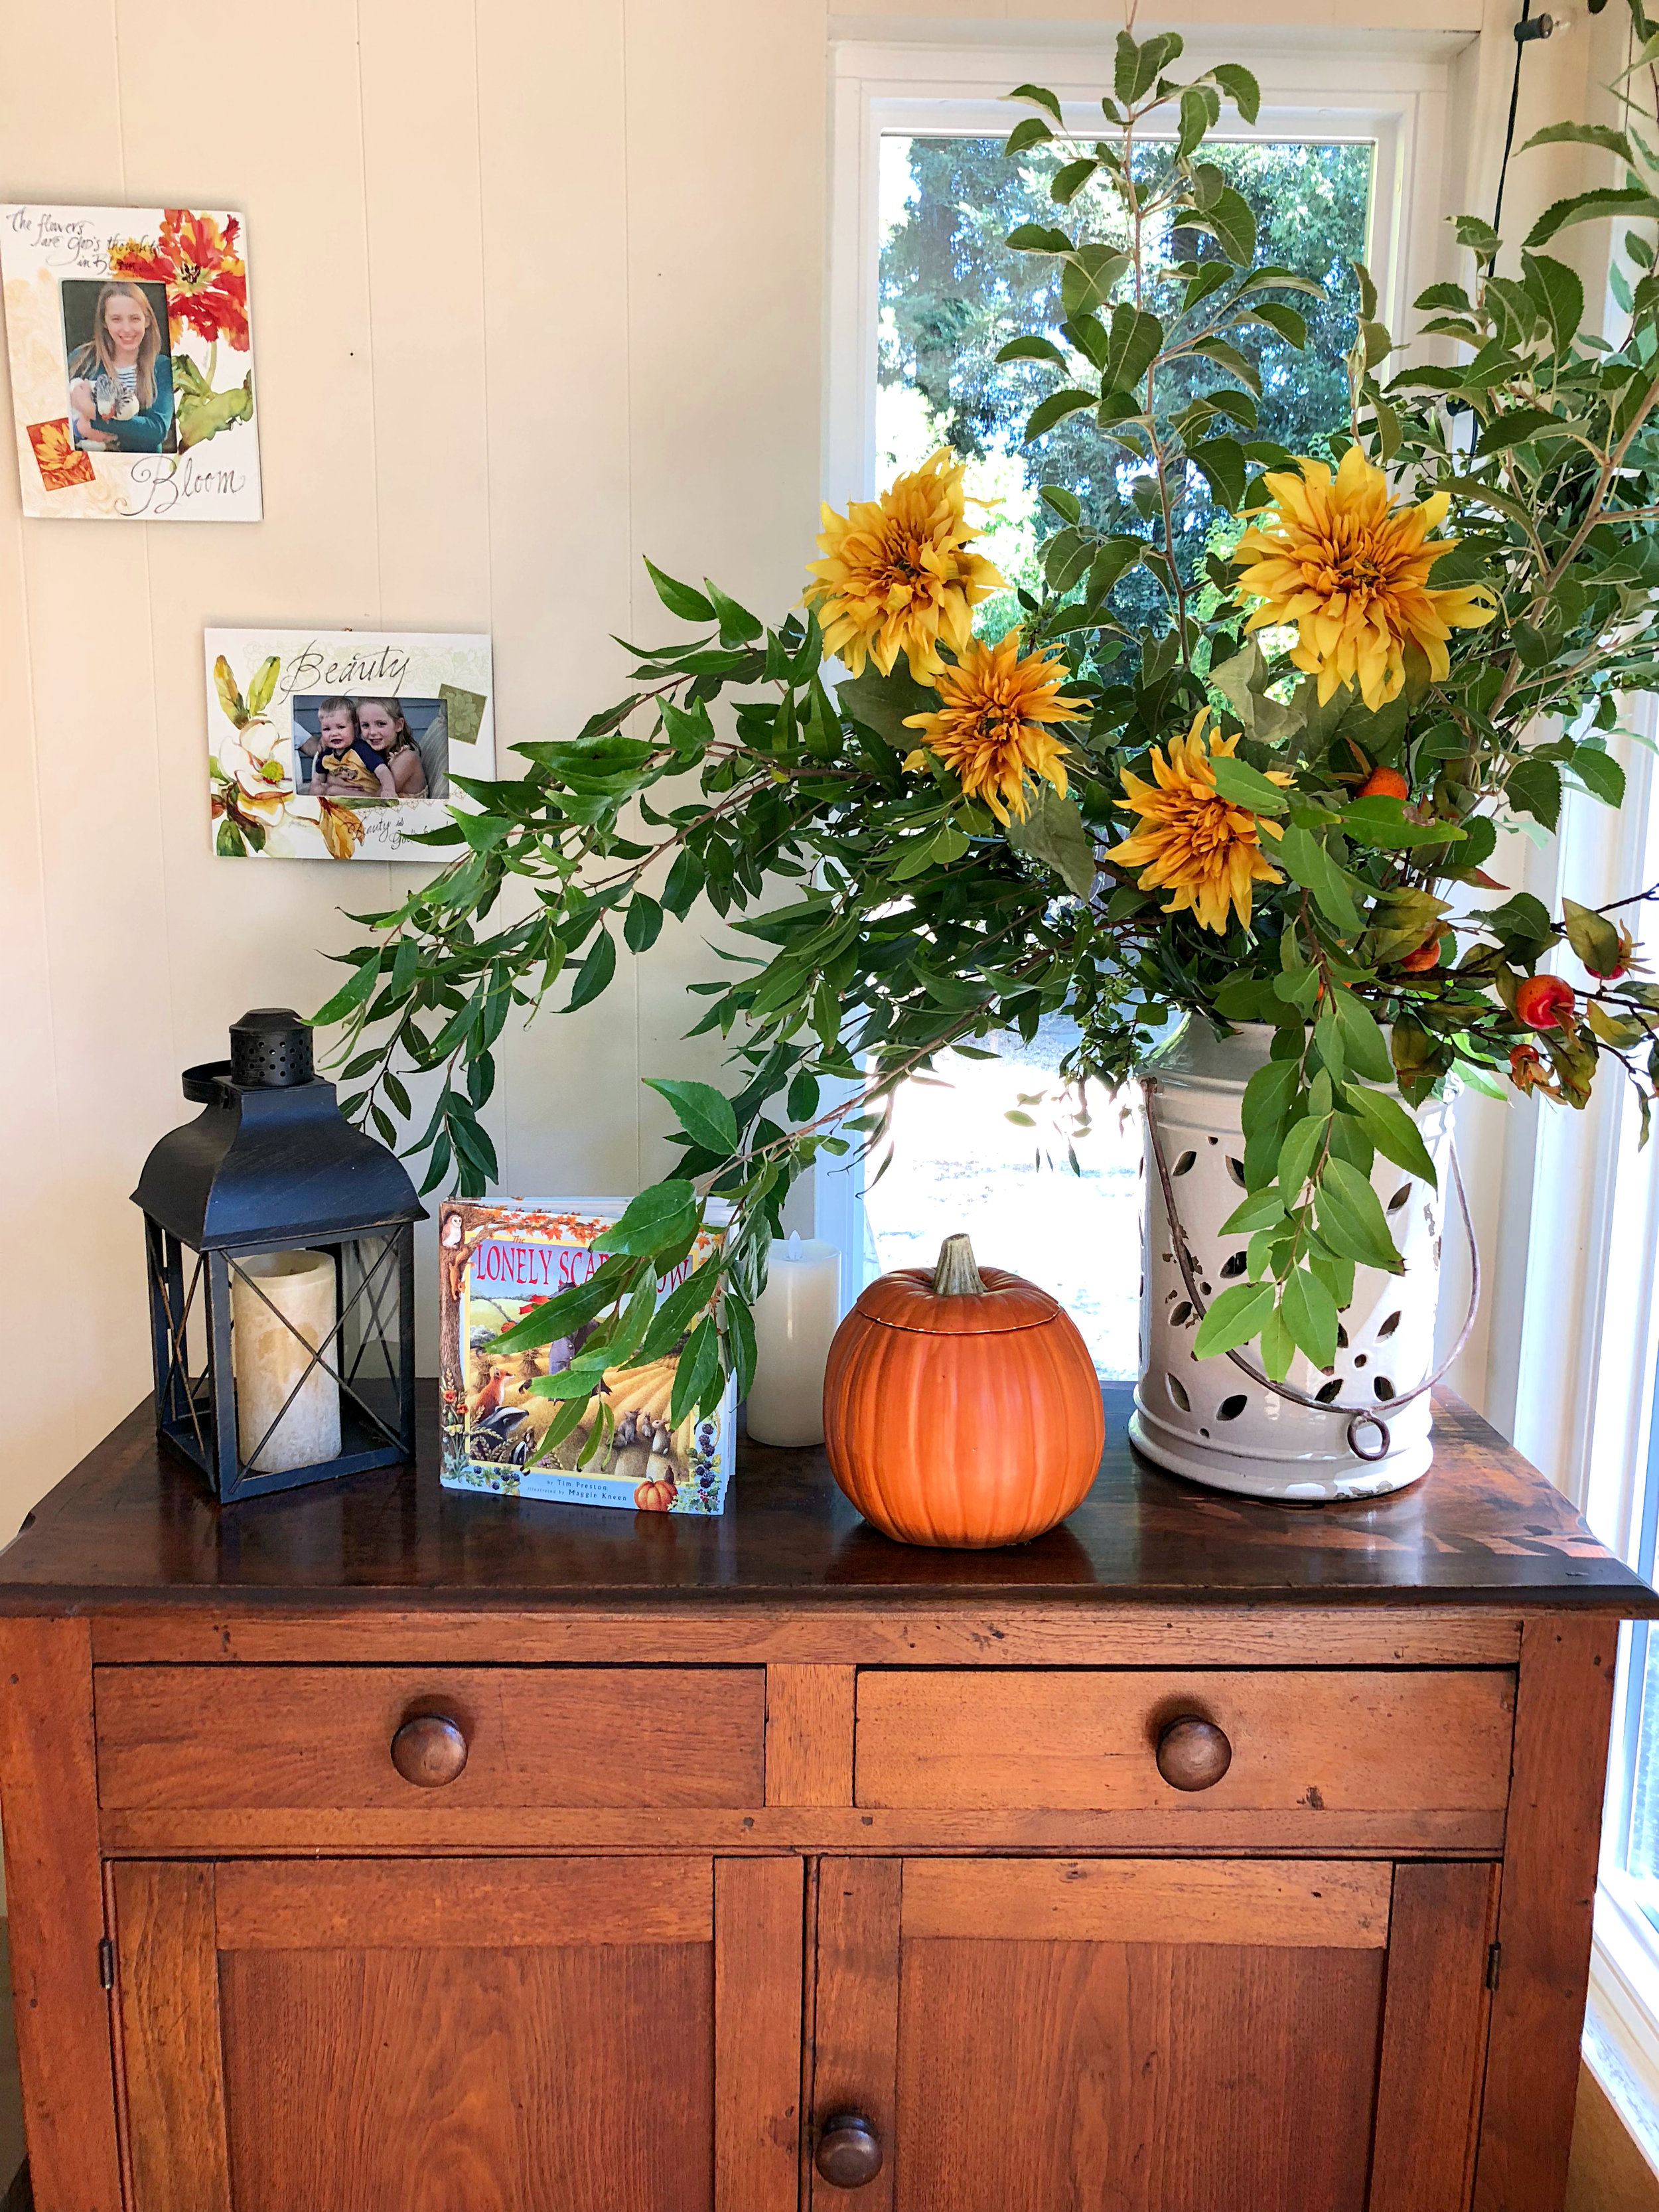 Fall decor - a mix of investments (the Pottery Barn candle, flower stems, and ceramic pot), Consignment finds (the buffet), Homegoods items (picture frames and lantern), hand-me-downs (my mom's ceramic pumpkin), a children's picture book, and nature (cut branches from our yard)